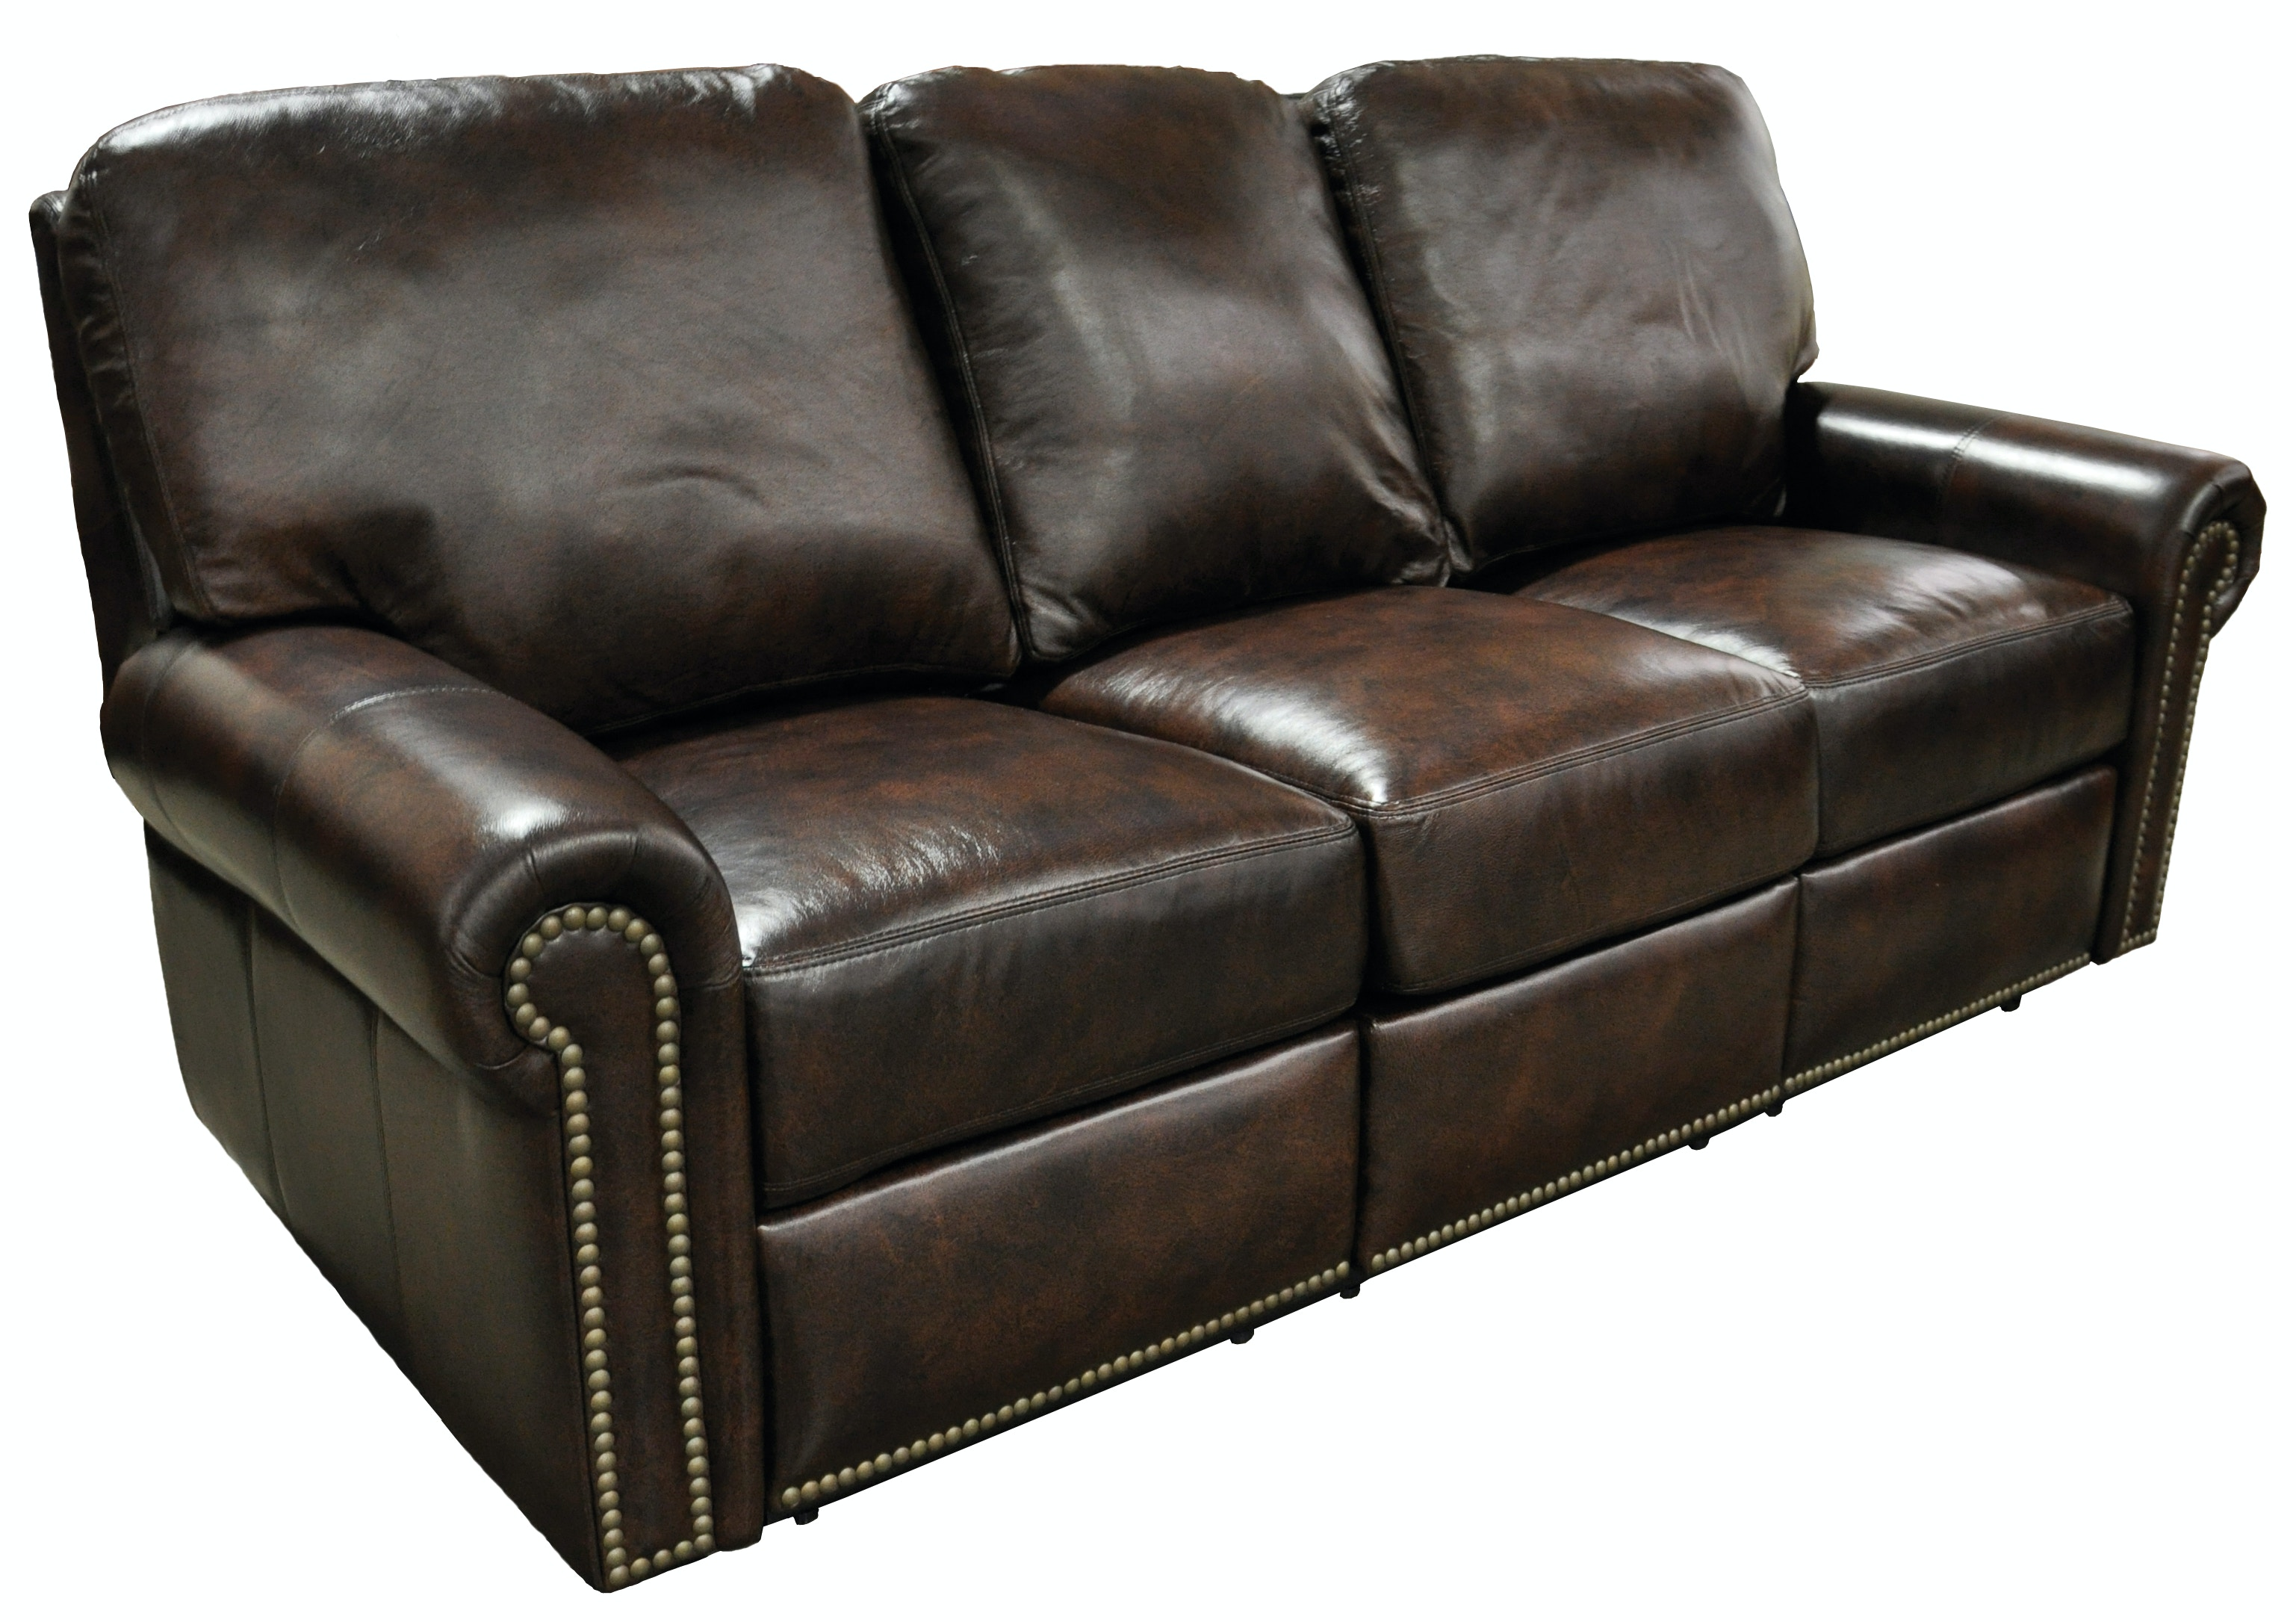 power reclining sofa made in usa selig monroe slone clearance center living room divani all leather the